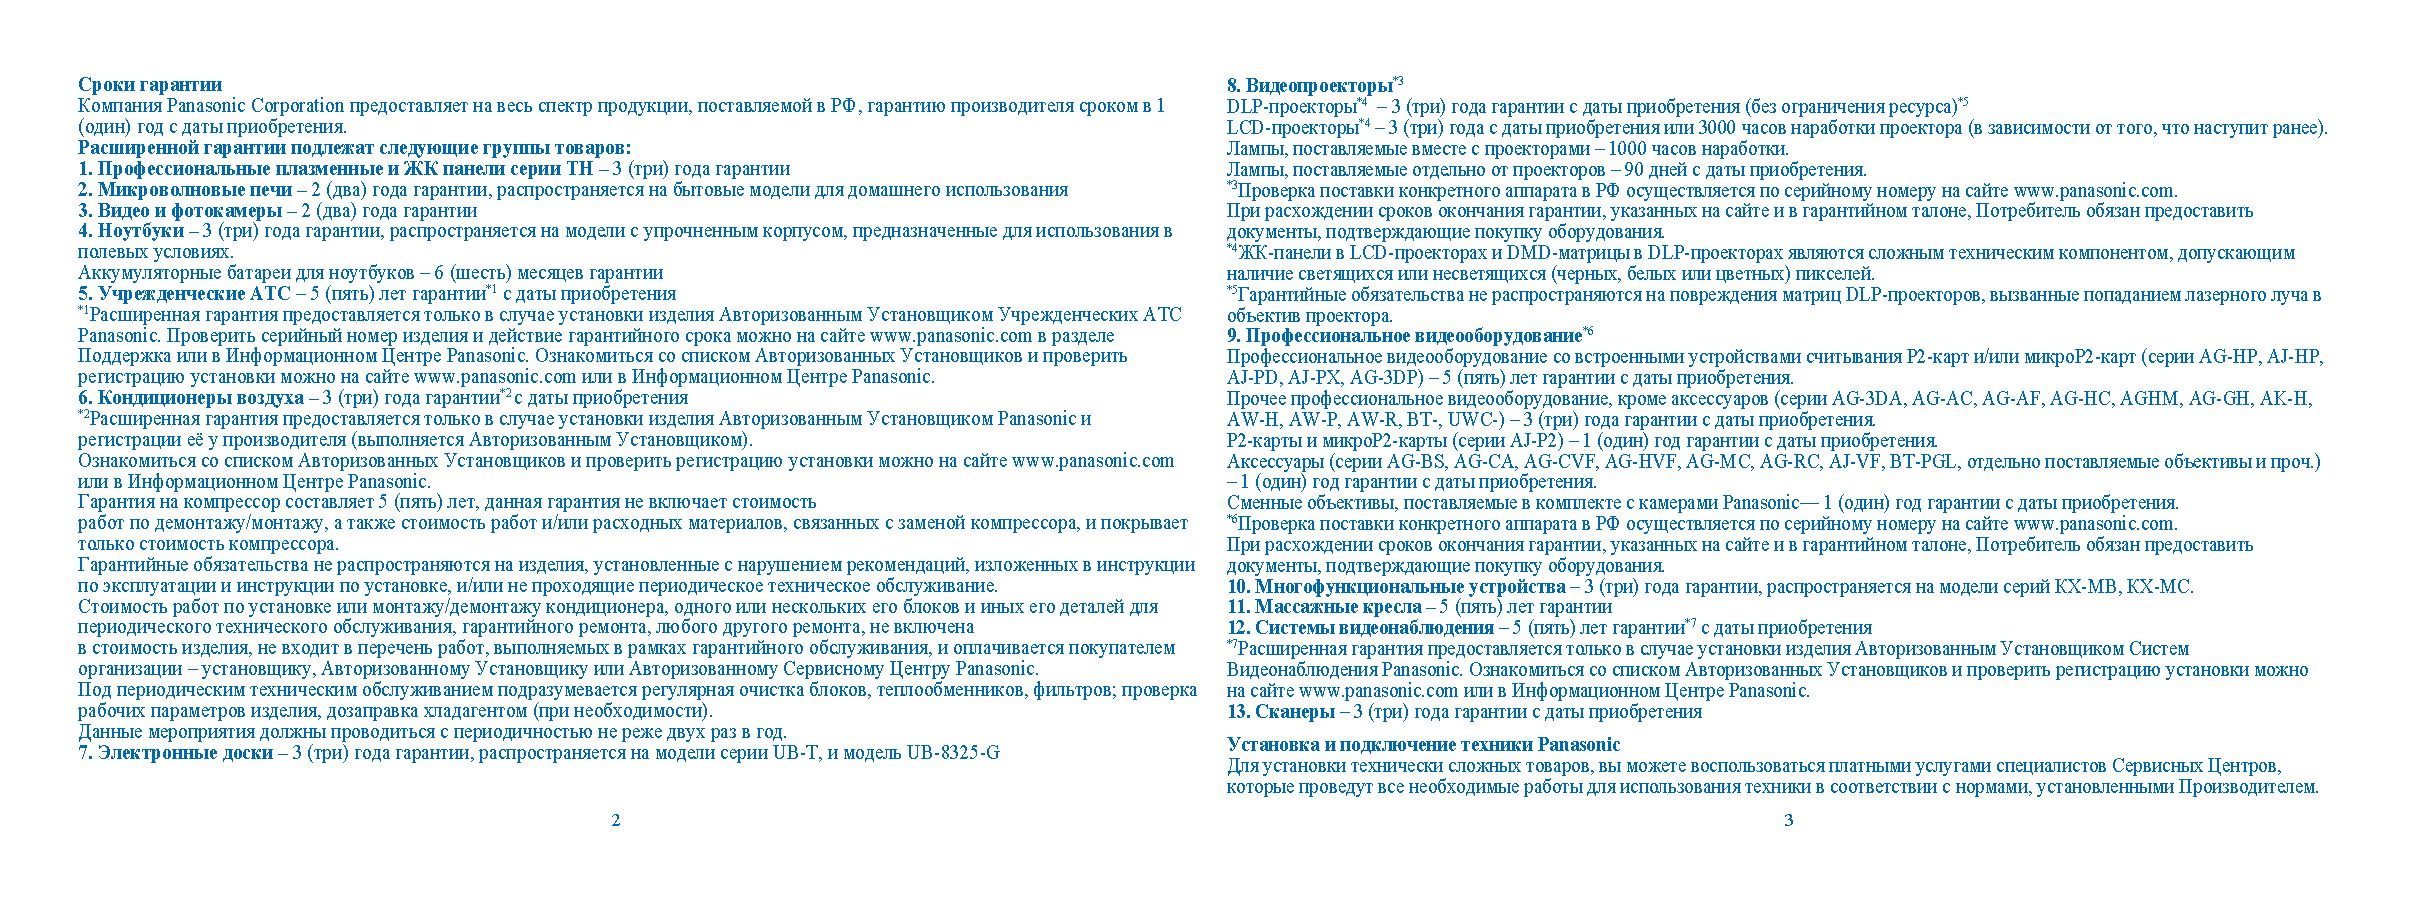 GNRL_unified_from_PRA_side_directly_to_Dealers_last_vertion_Страница_2.png